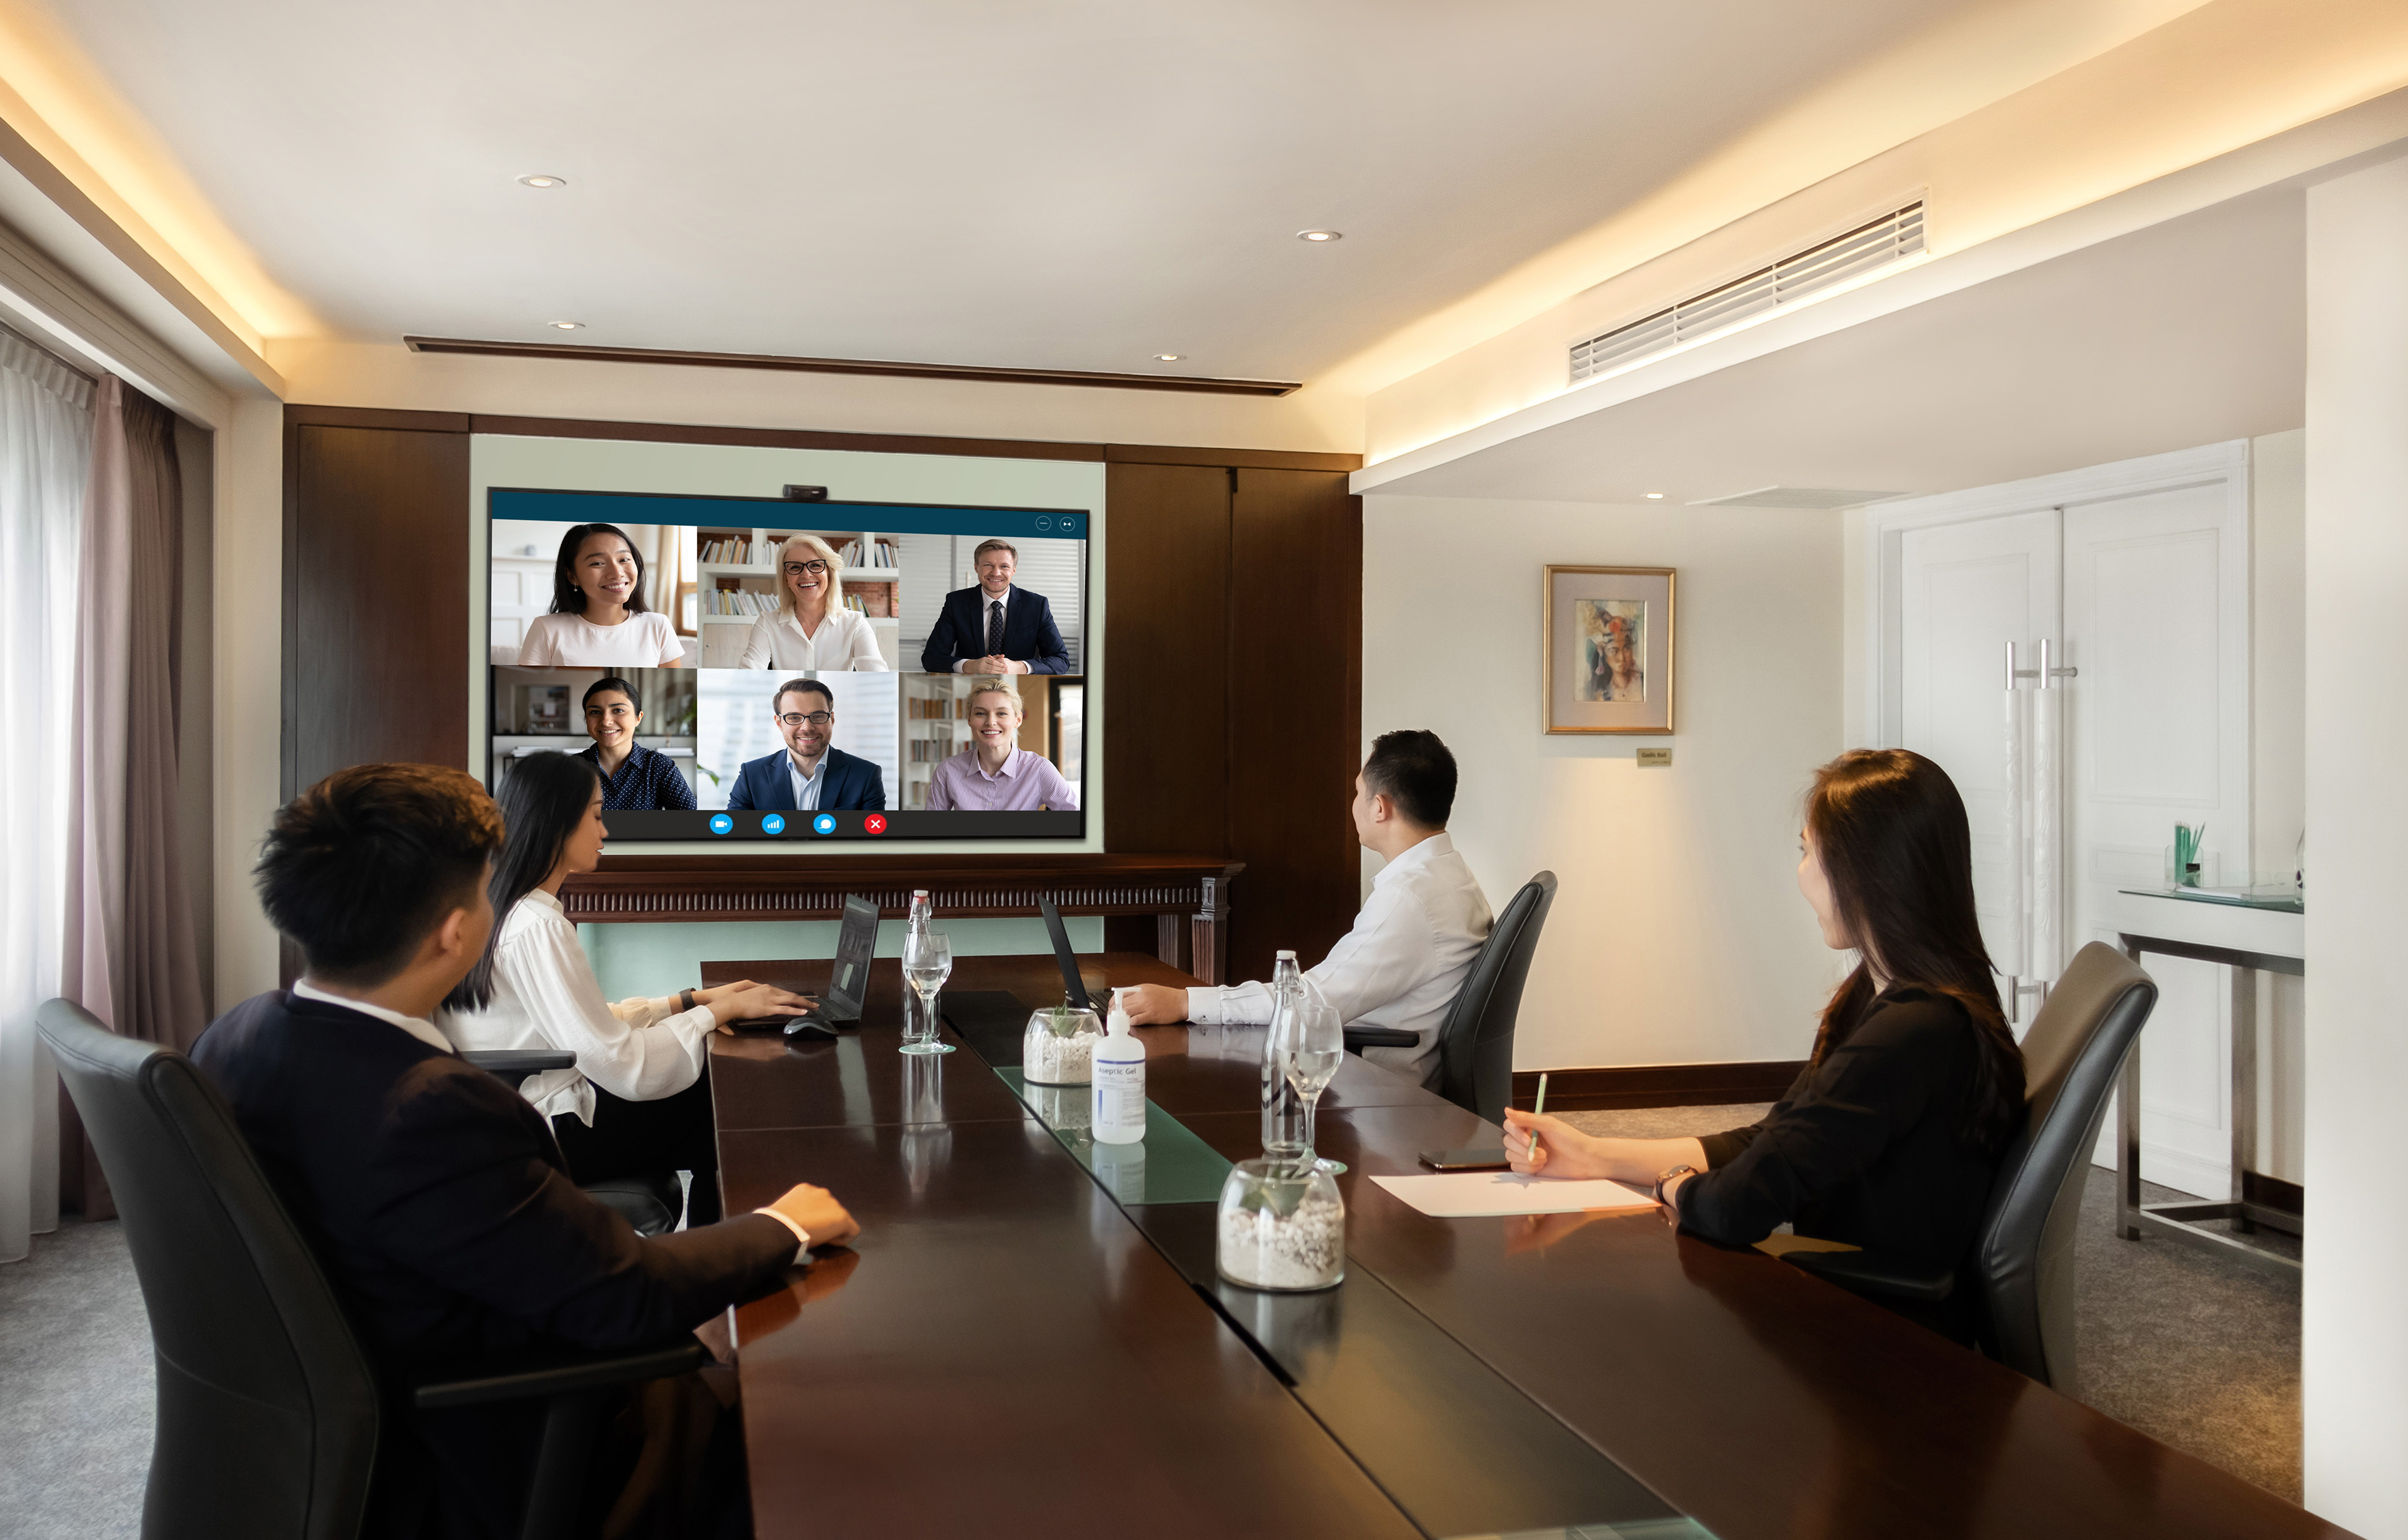 MARRIOTT INTERNATIONAL VIRTUAL MEETINGS